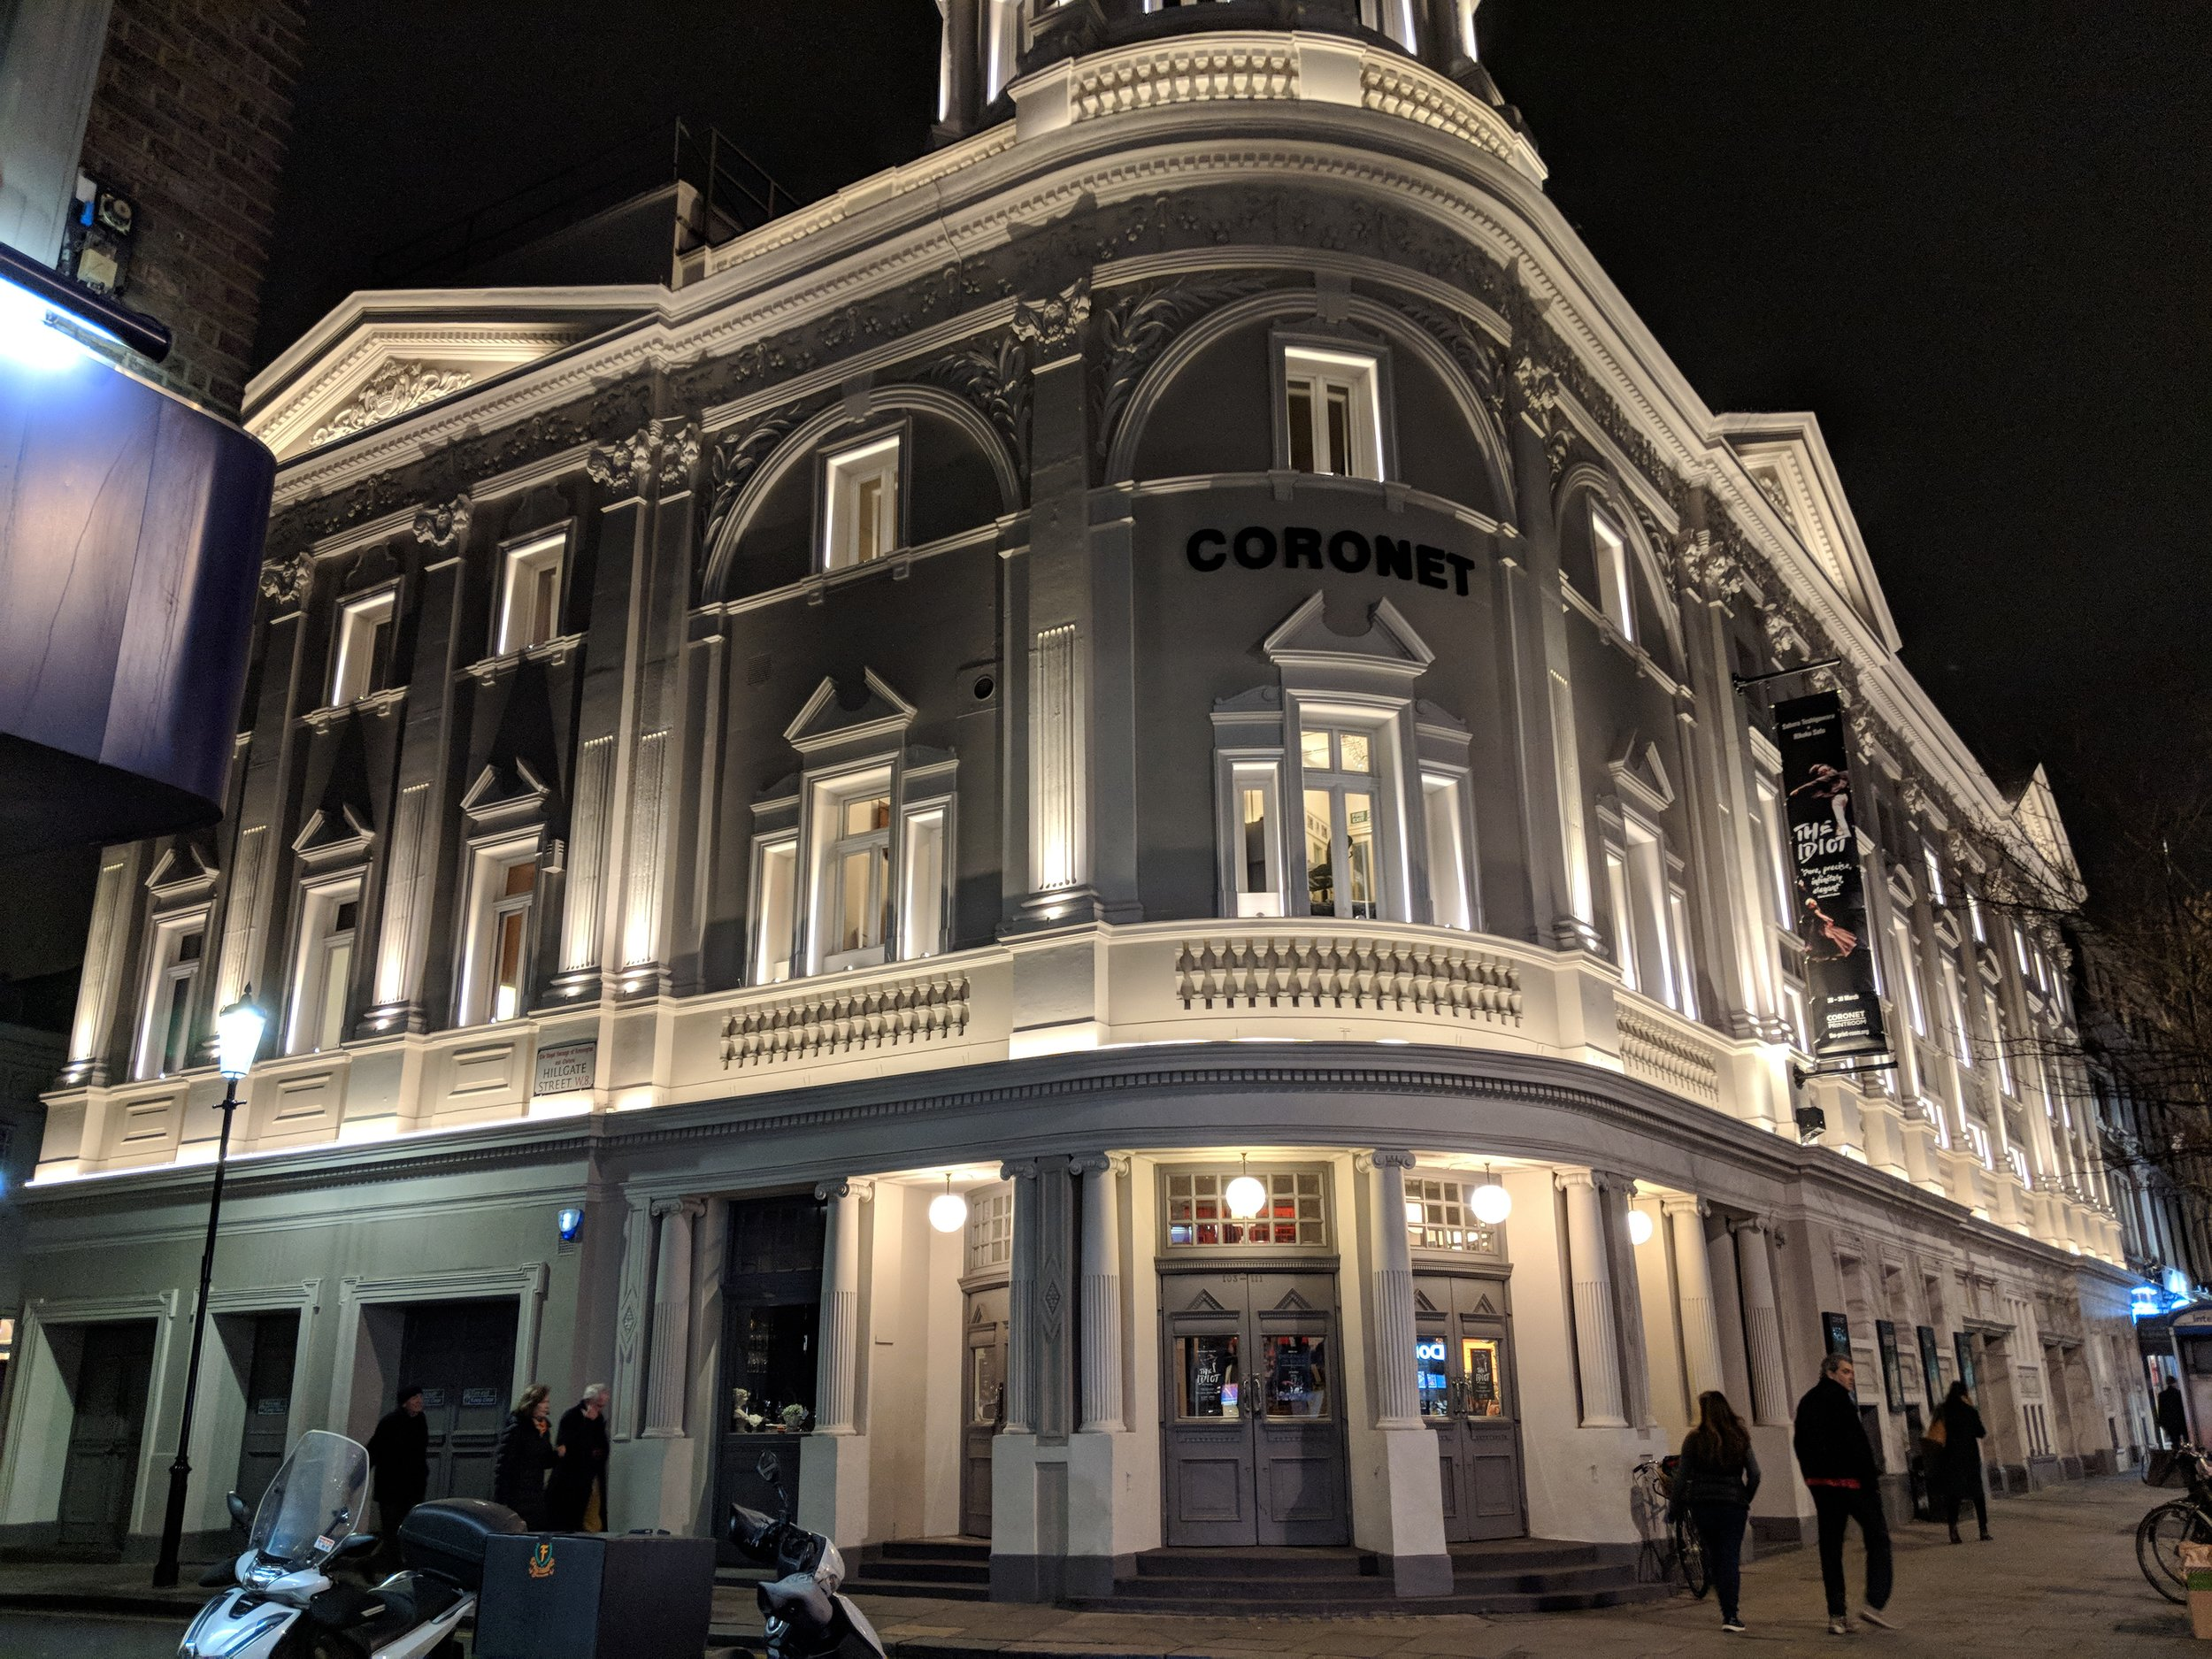 Print Room at The Coronet - visited 20/03/2019